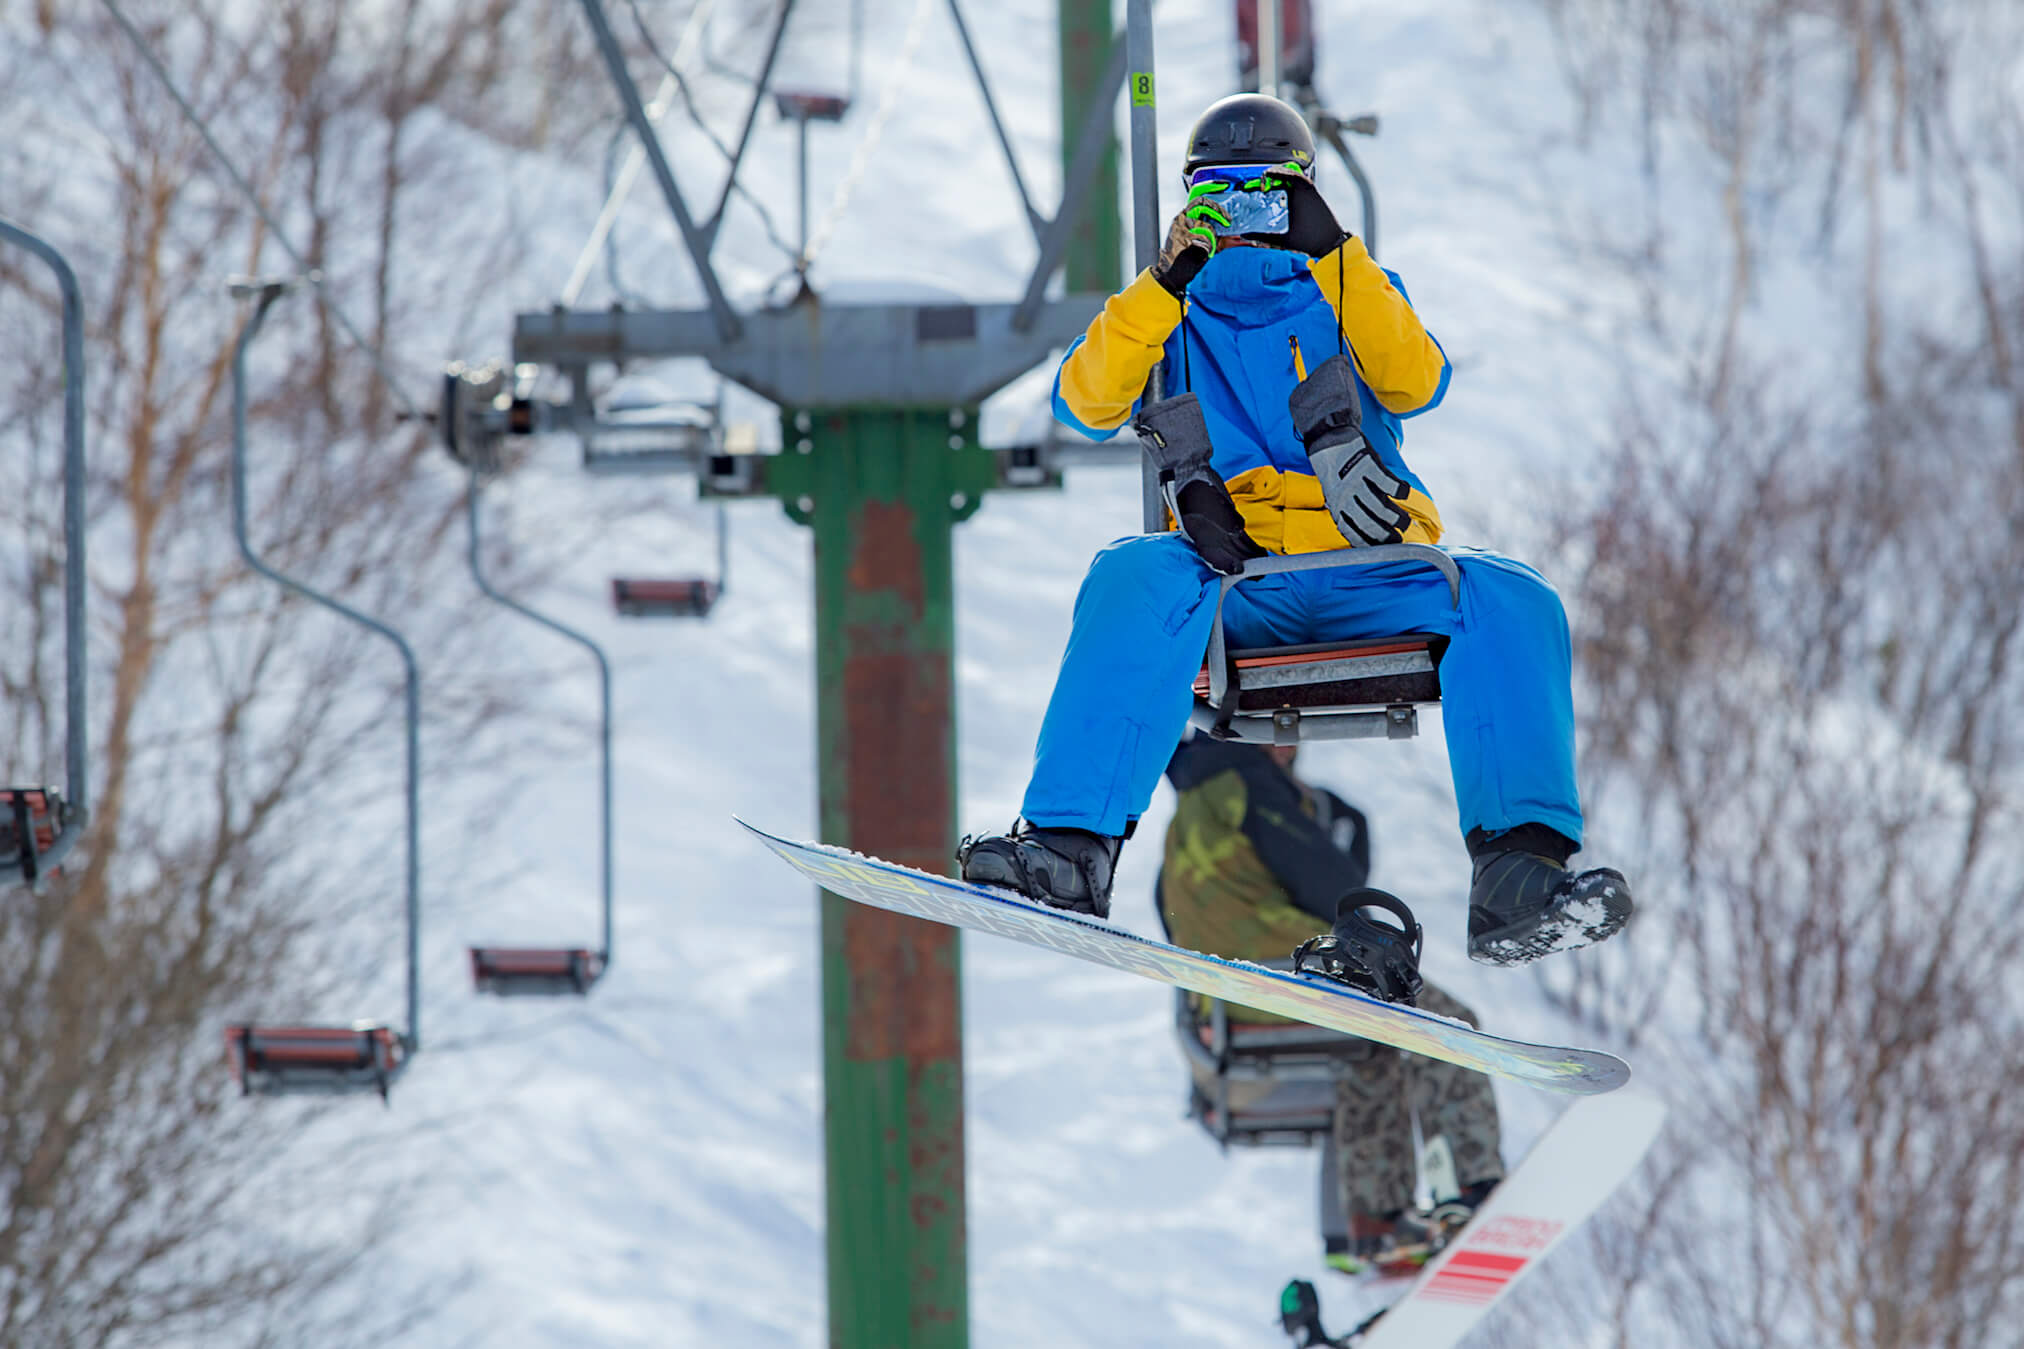 Sitting reverse on pizzabox lift in Madarao during Powder Culture Tour with First Tours